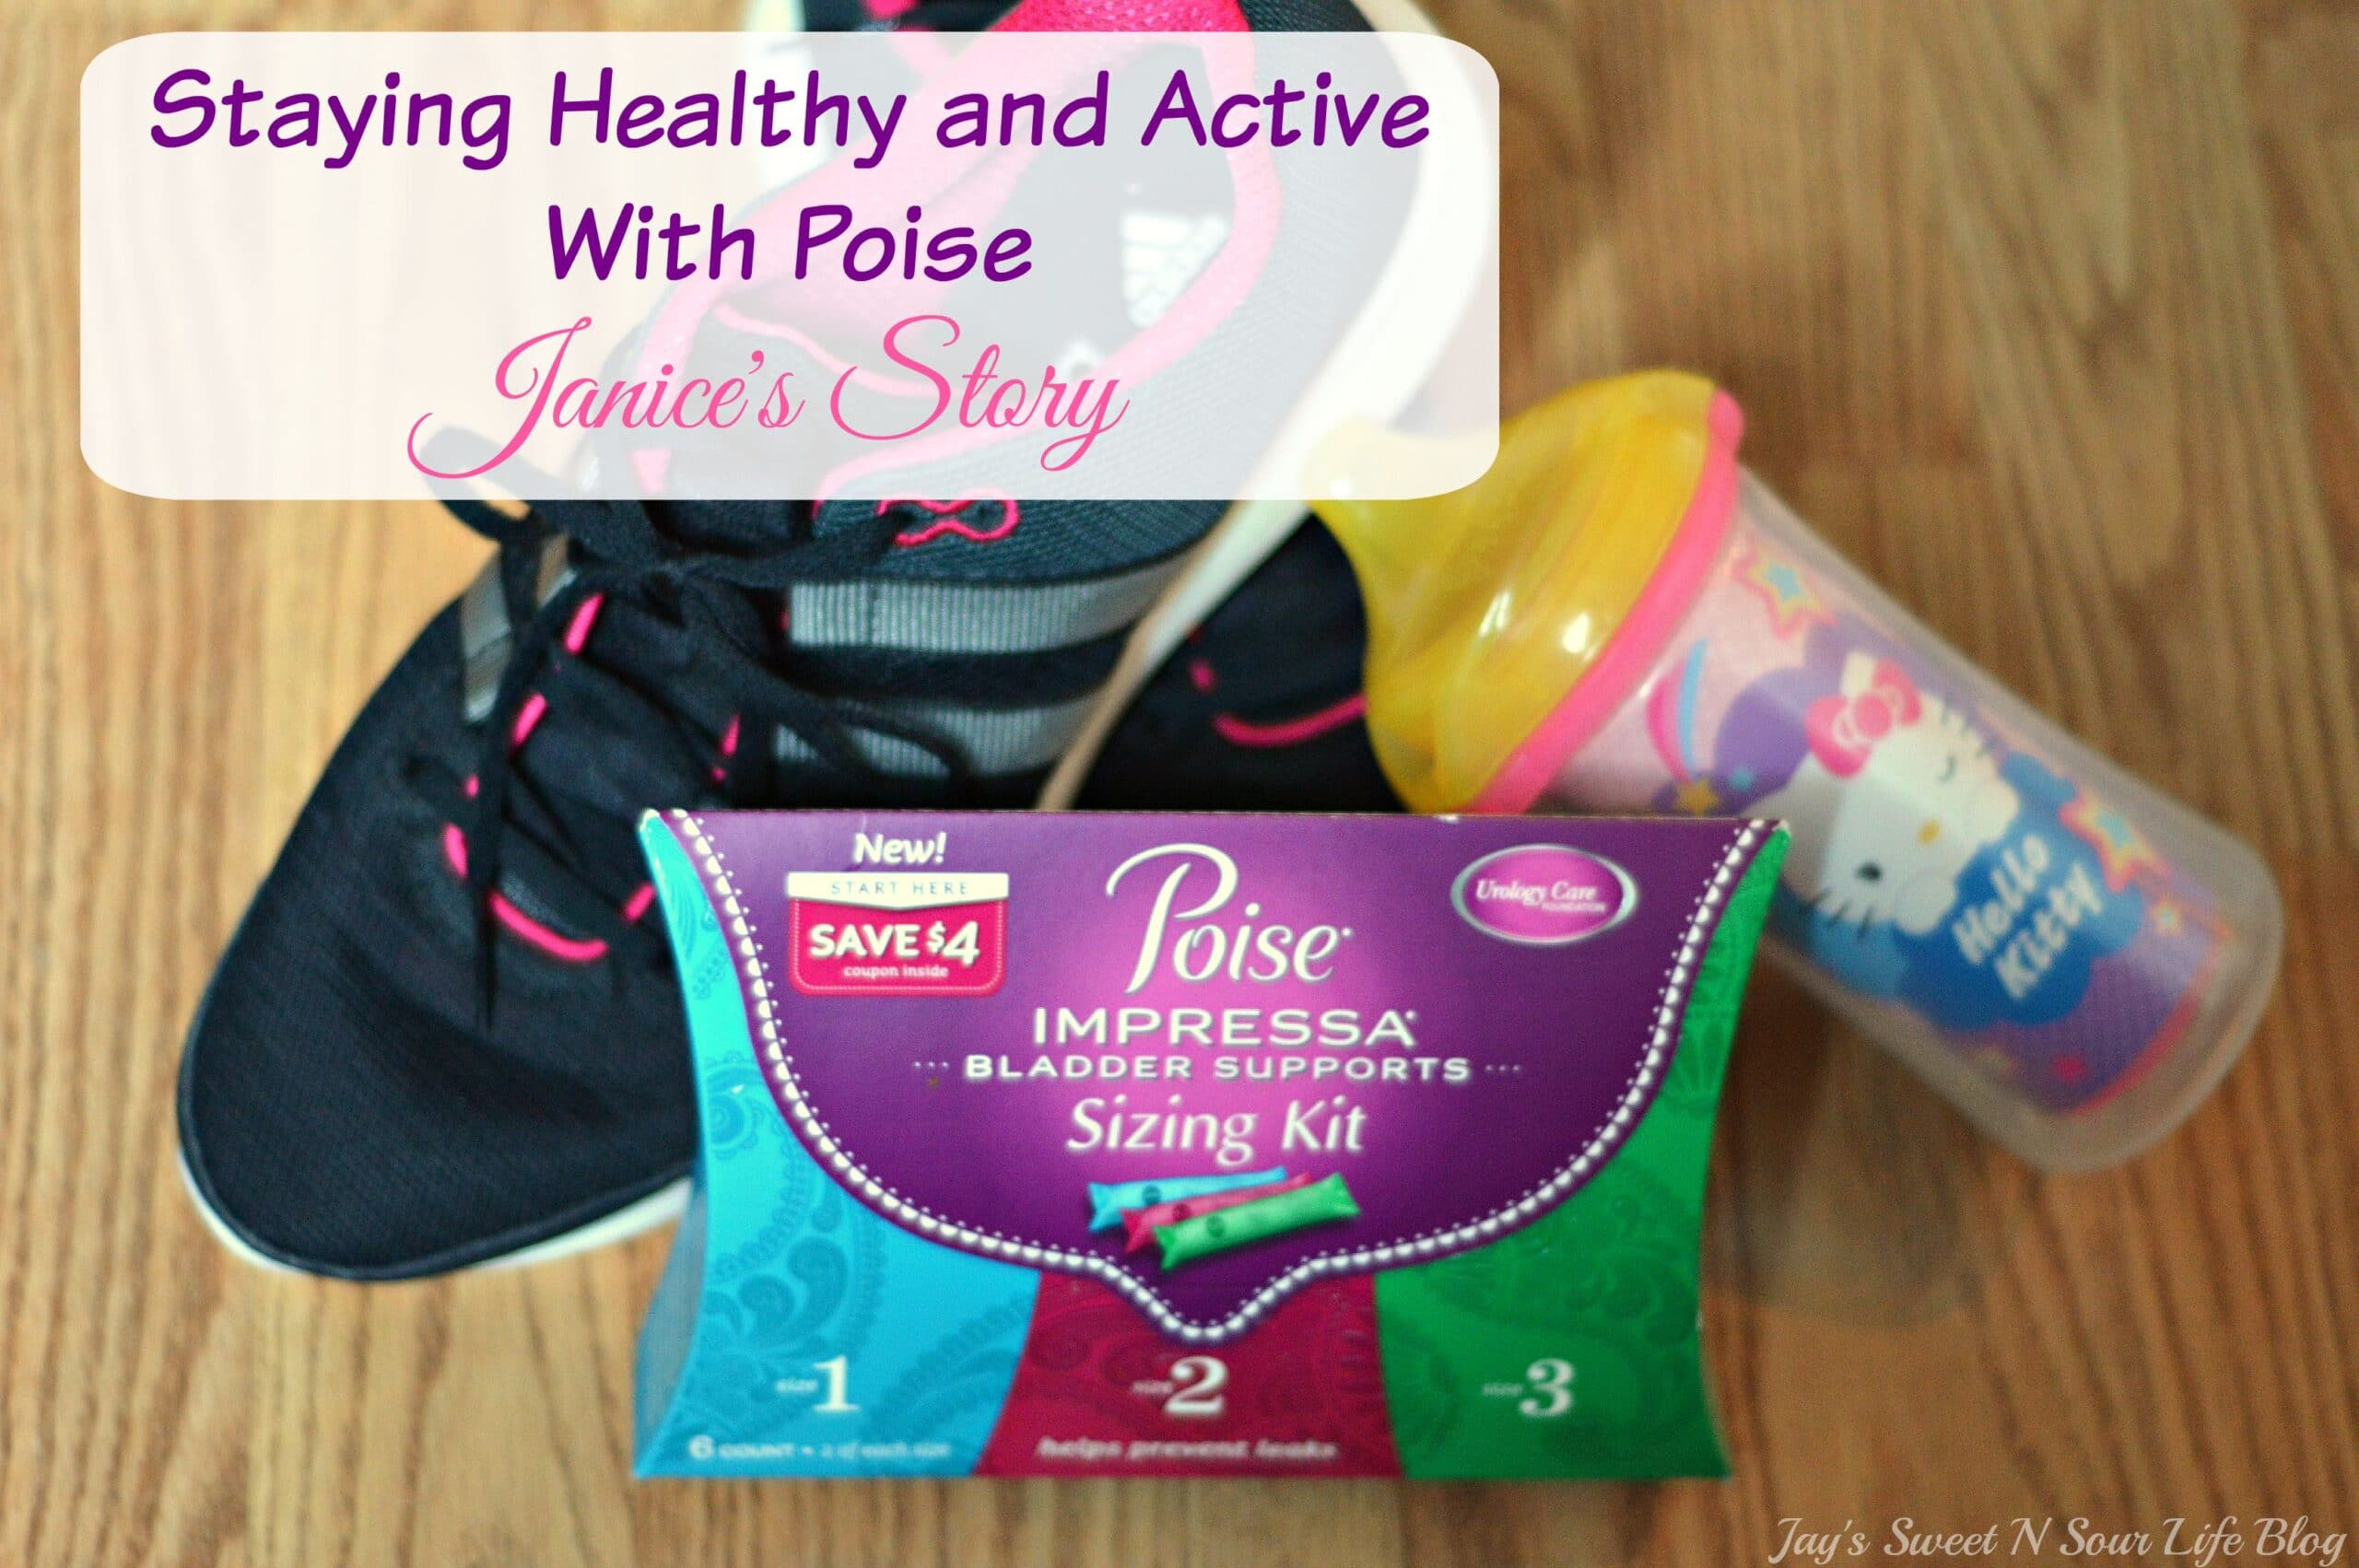 Staying Healthy and Active With Poise – Janice's Story